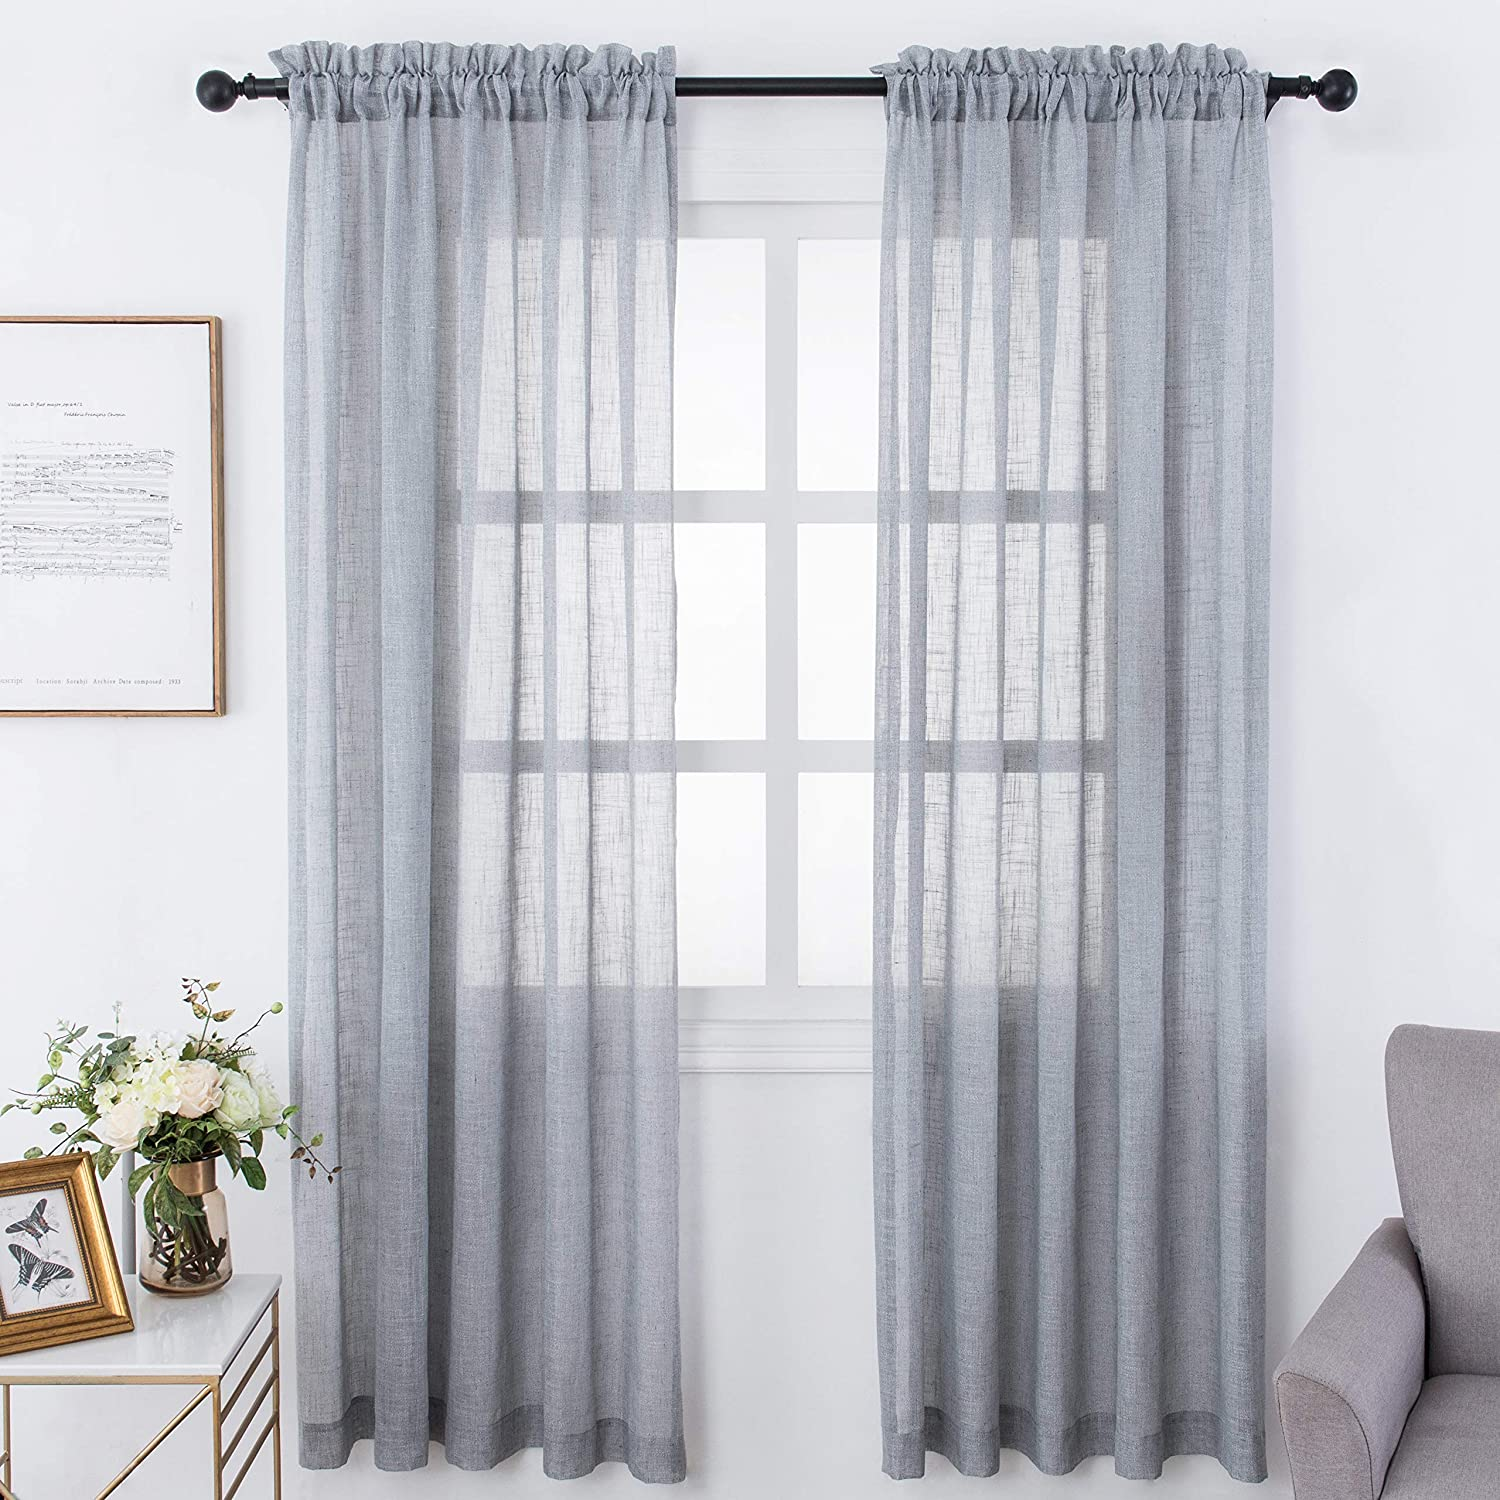 Amazoncom Visiontex 54 X 63 Inch Sheer Curtains Rod Pocket For